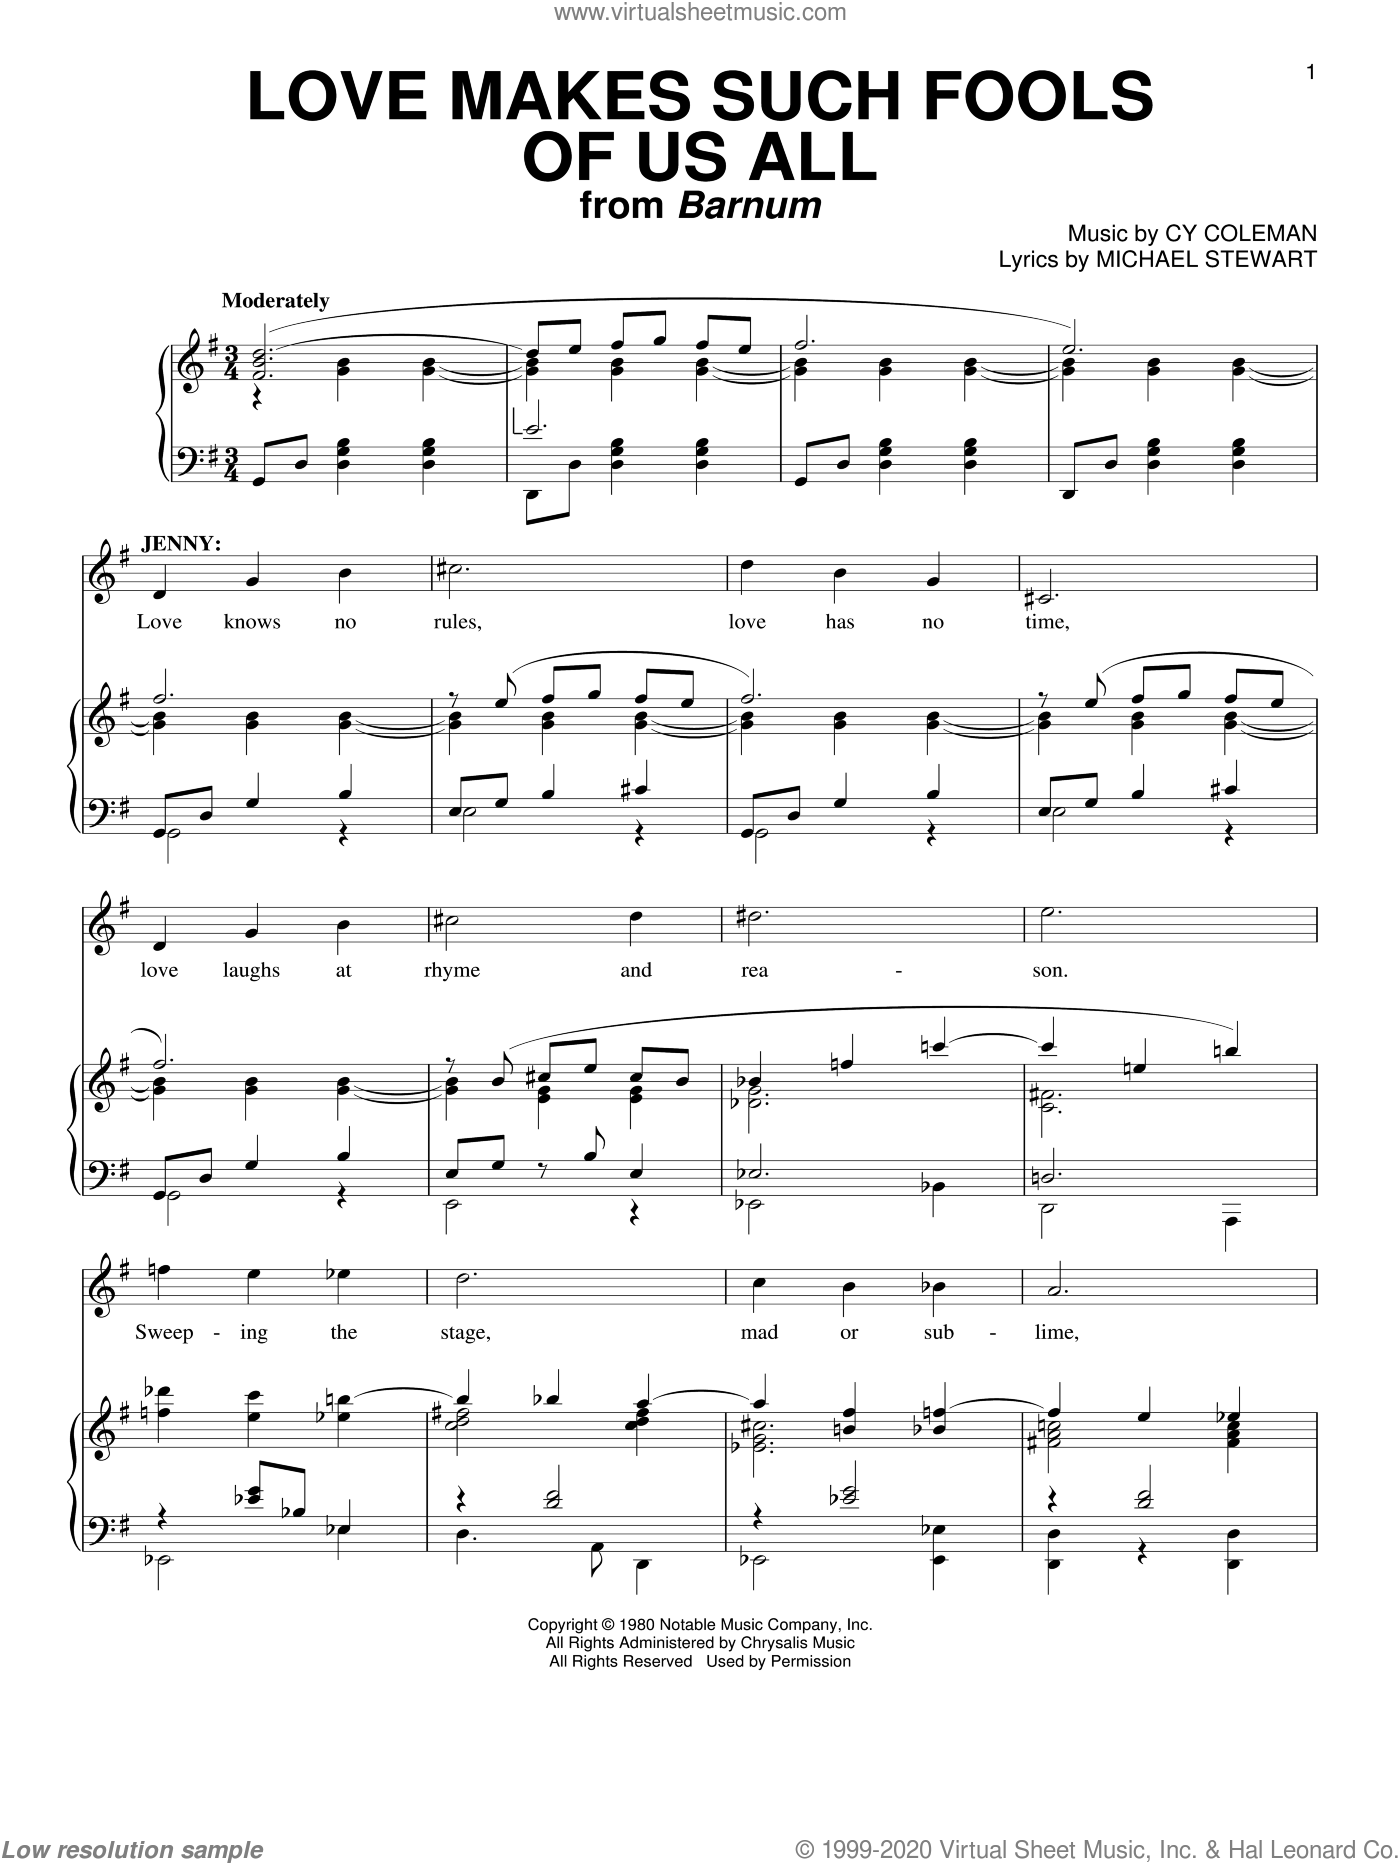 Love Makes Such Fools Of Us All sheet music for voice and piano by Cy Coleman and Michael Stewart, intermediate. Score Image Preview.